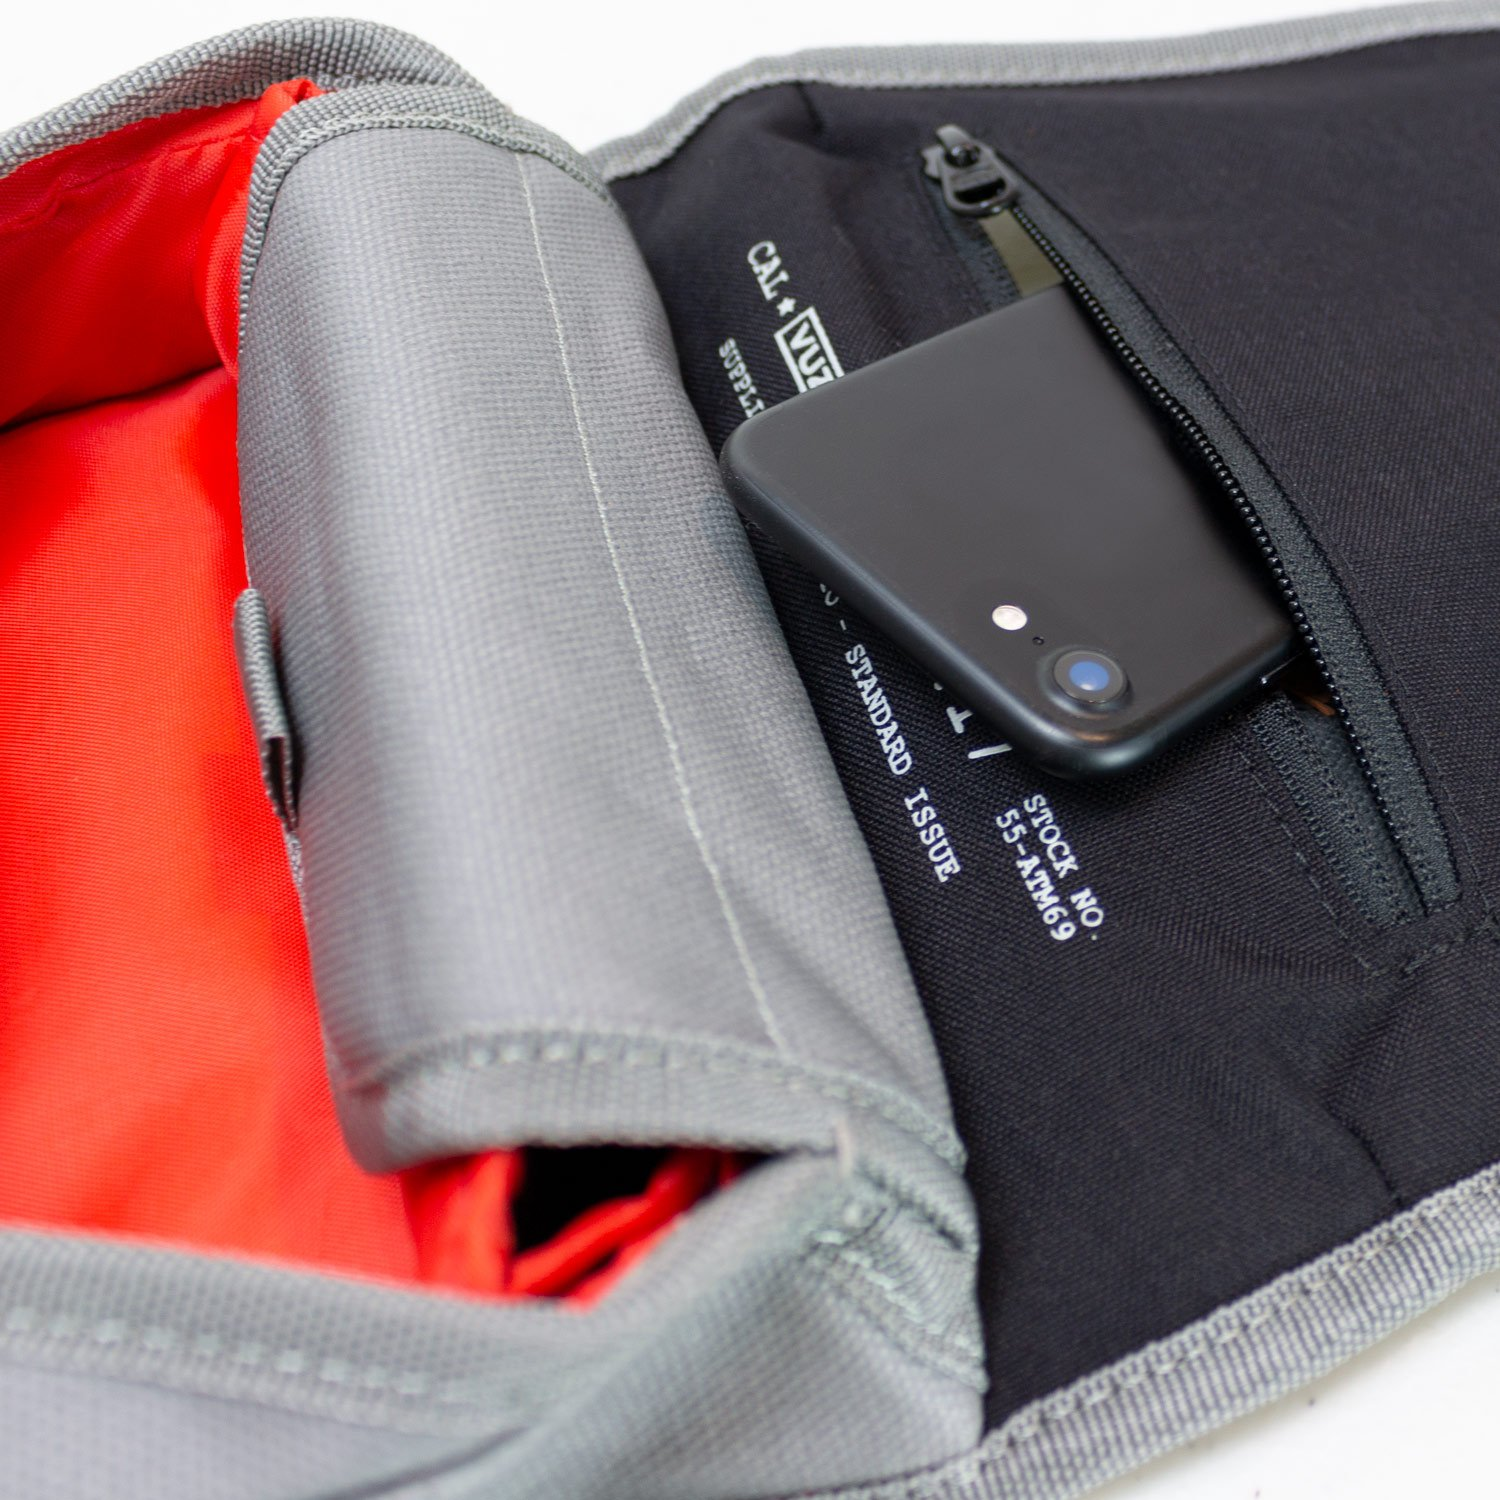 Multiple Compartments and Leather Handcrafted Finish Vuz Moto Mini Tank Bag with Phone Window Magnet Mounting System